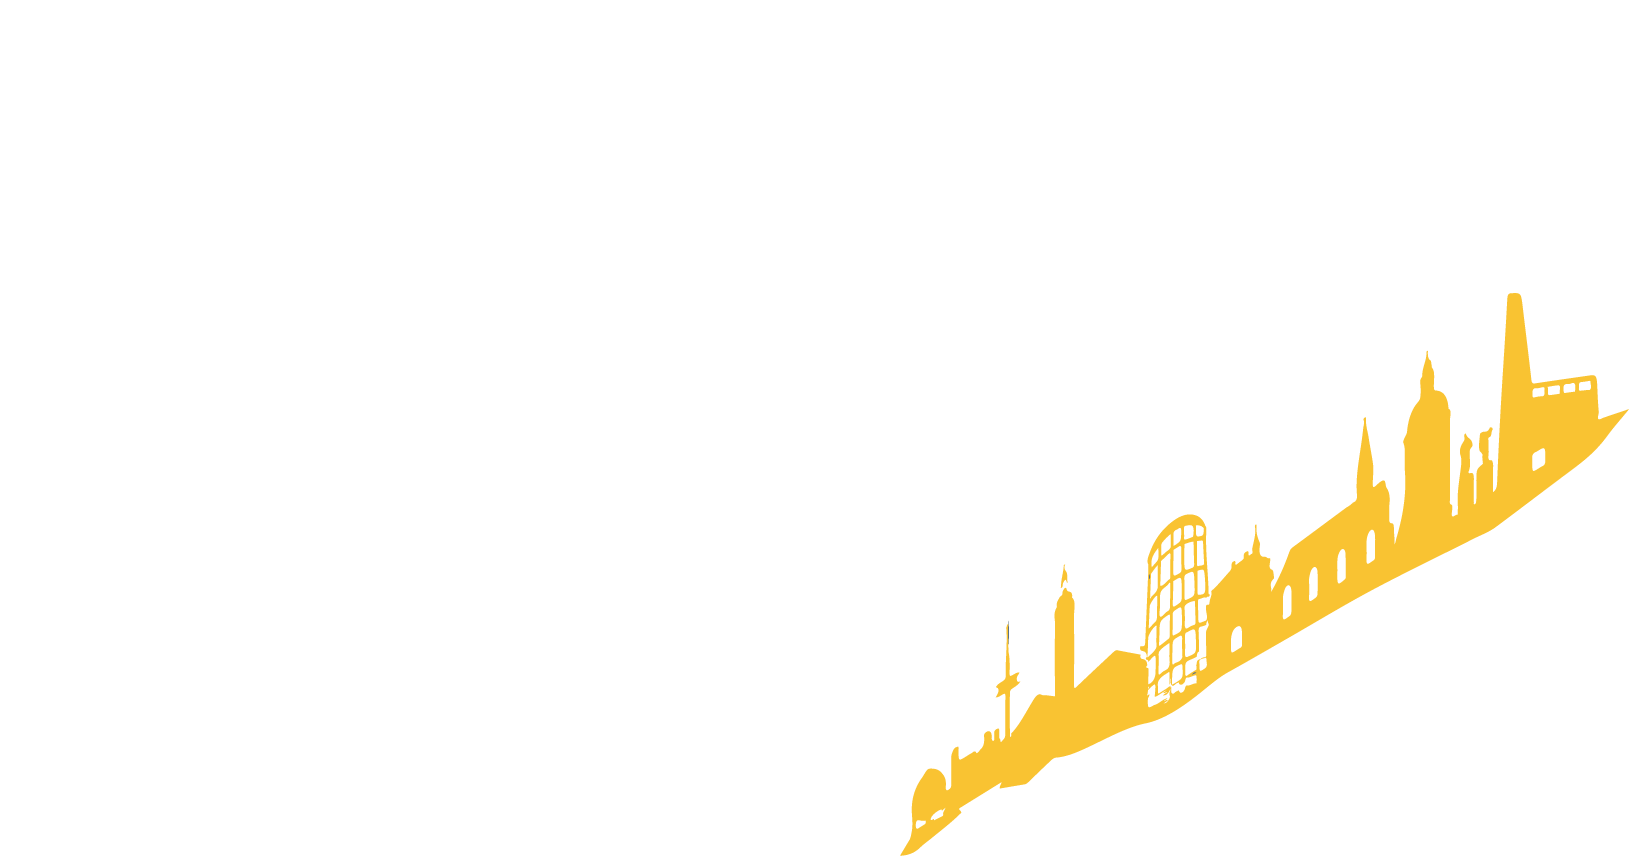 ECSCW 2020 (18th European Conference on Computer-Supported Cooperative Work)